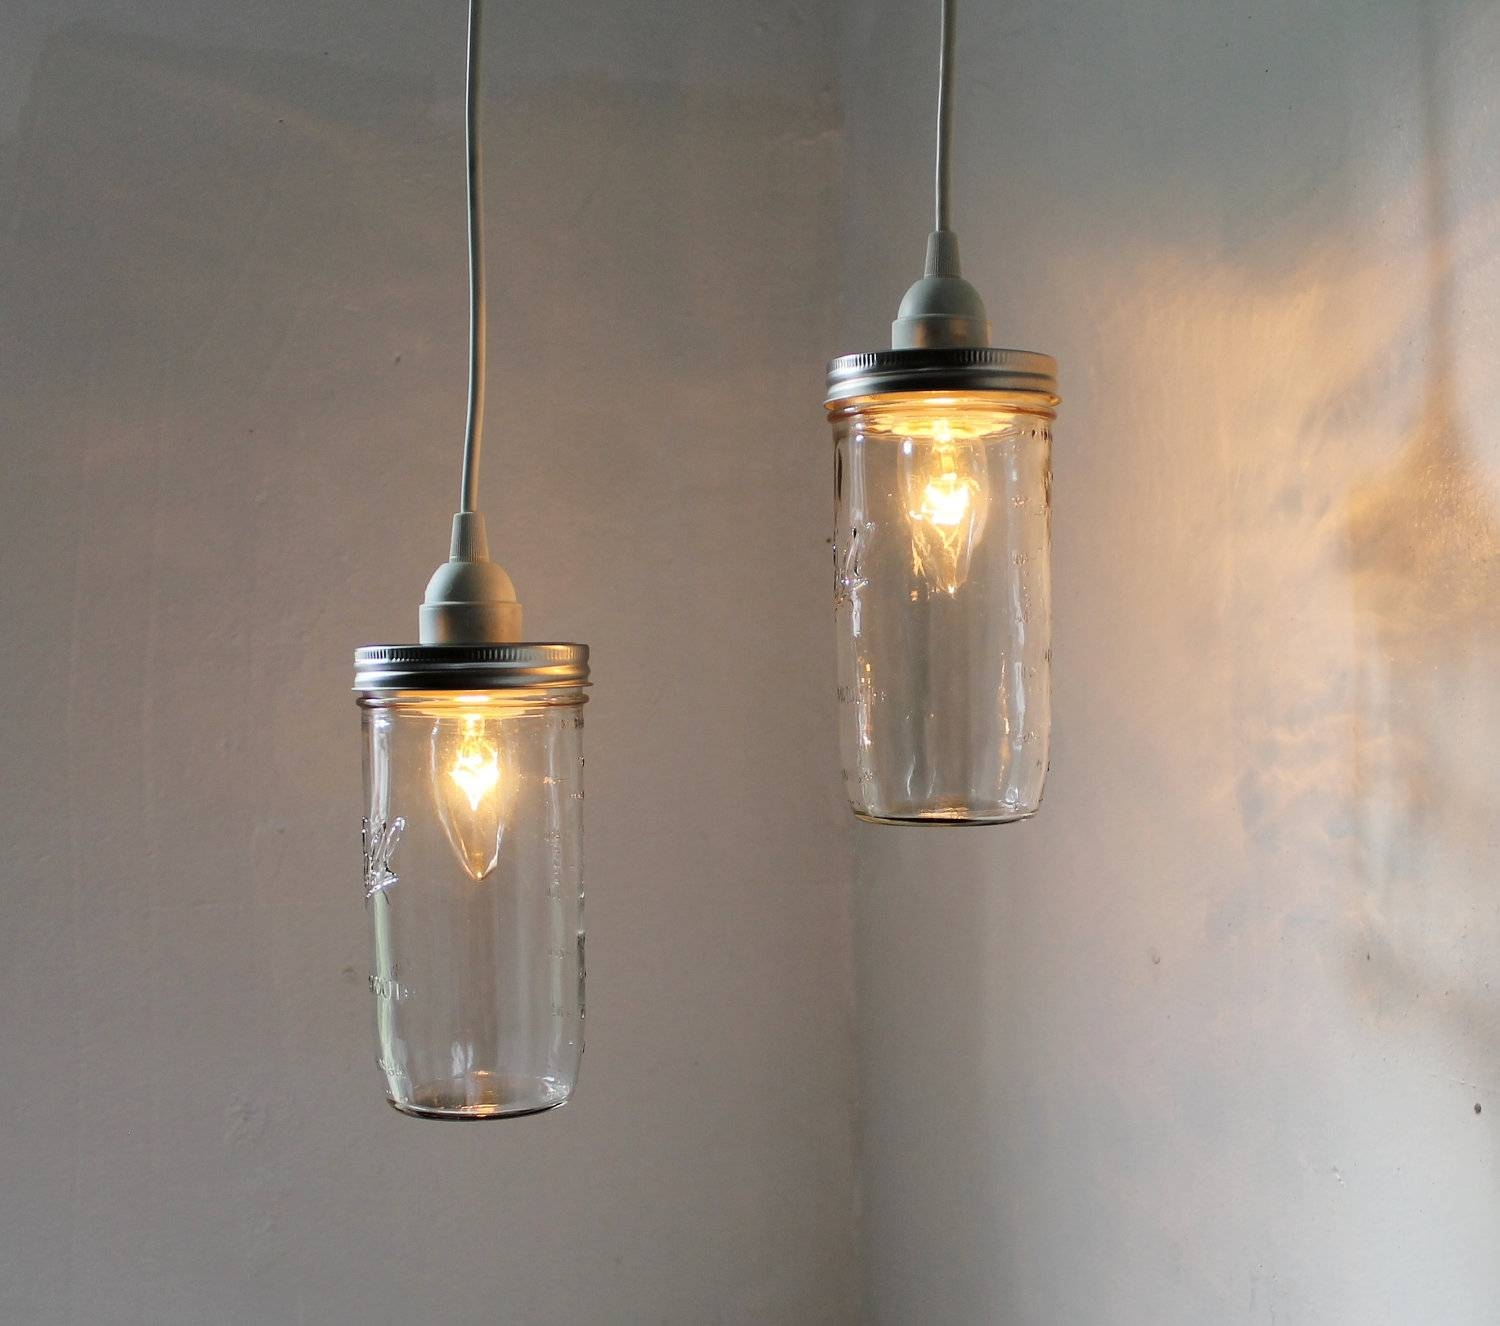 Fresh West Elm Mason Jar Pendant Light #12137 pertaining to West Elm Bathroom Pendant Lights (Image 11 of 15)